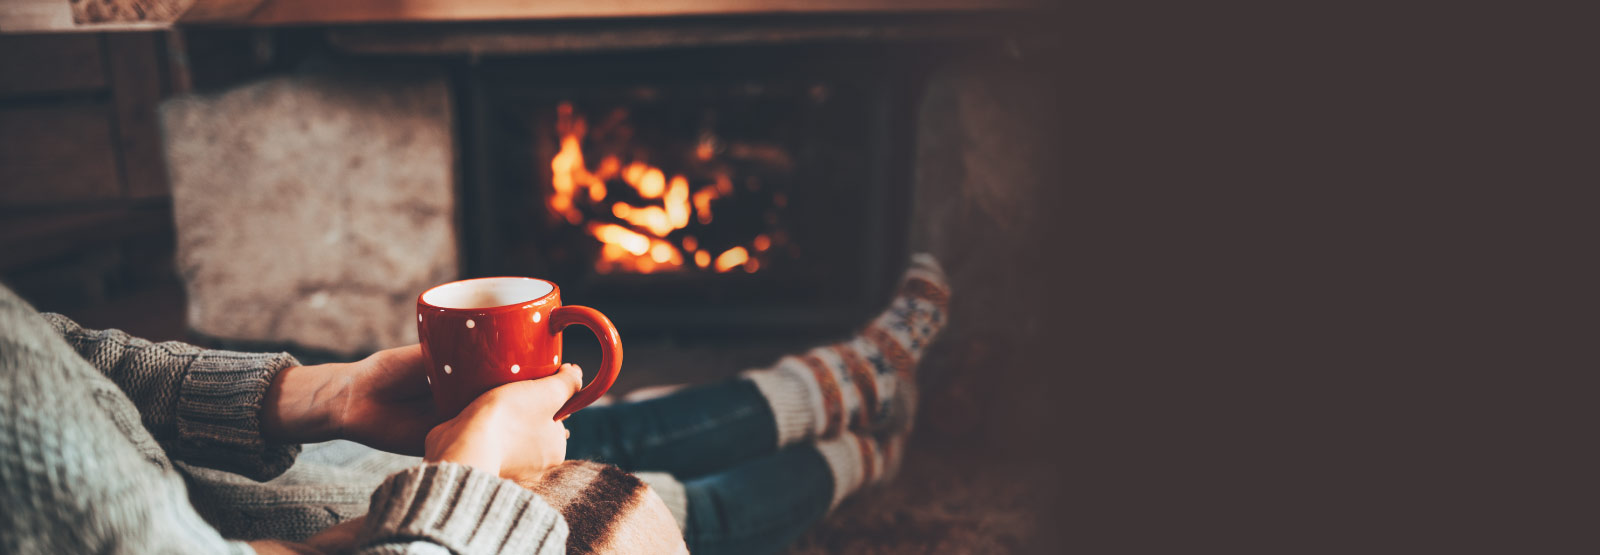 Woman holding red cup of coffee next to fireplace